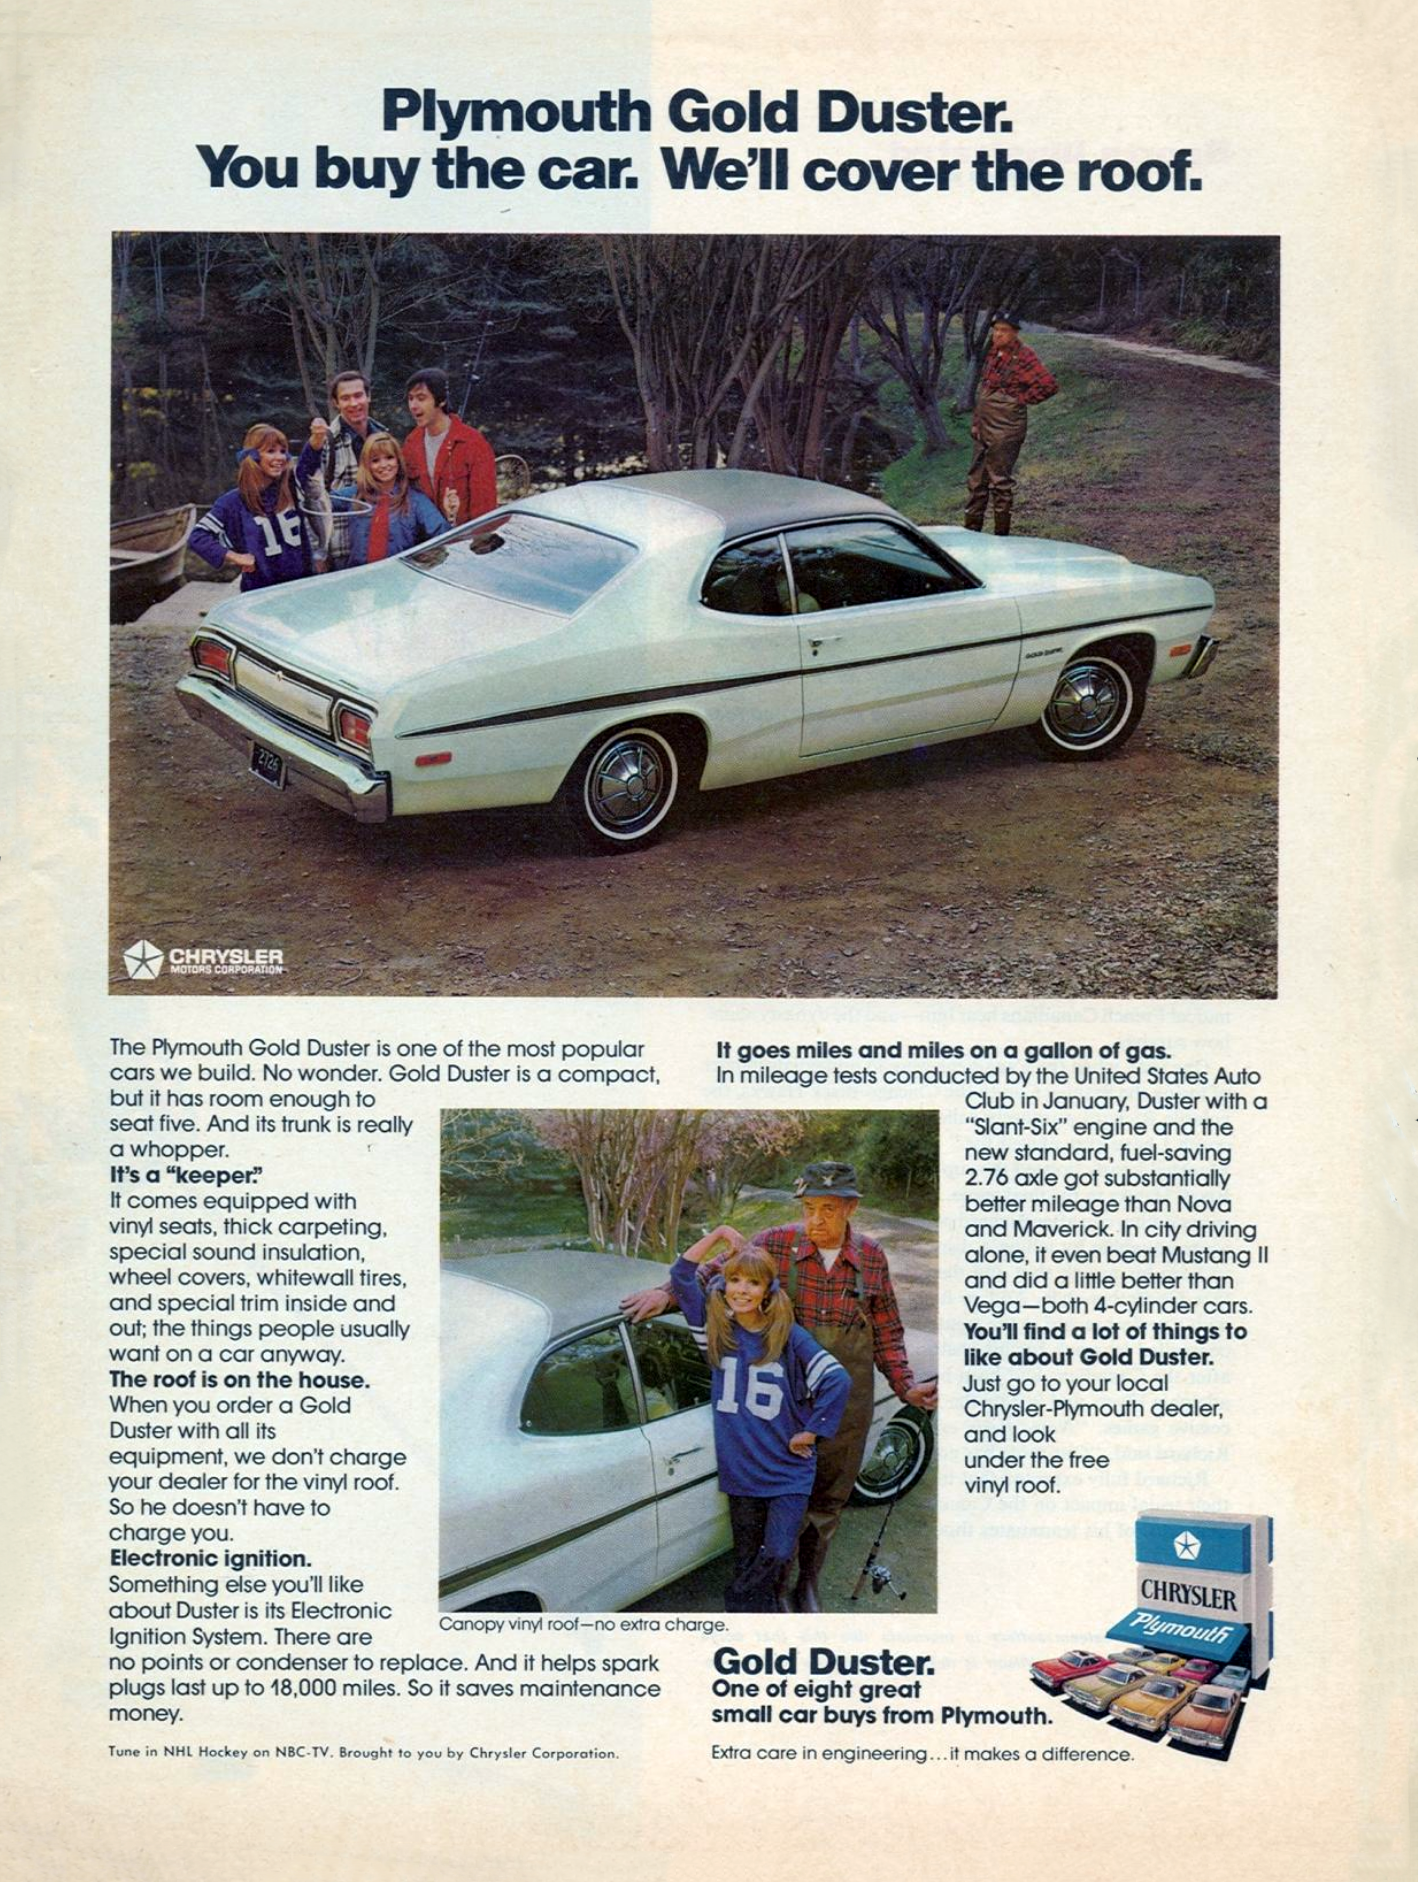 1974 Plymouth Duster Ad, Gold Duster